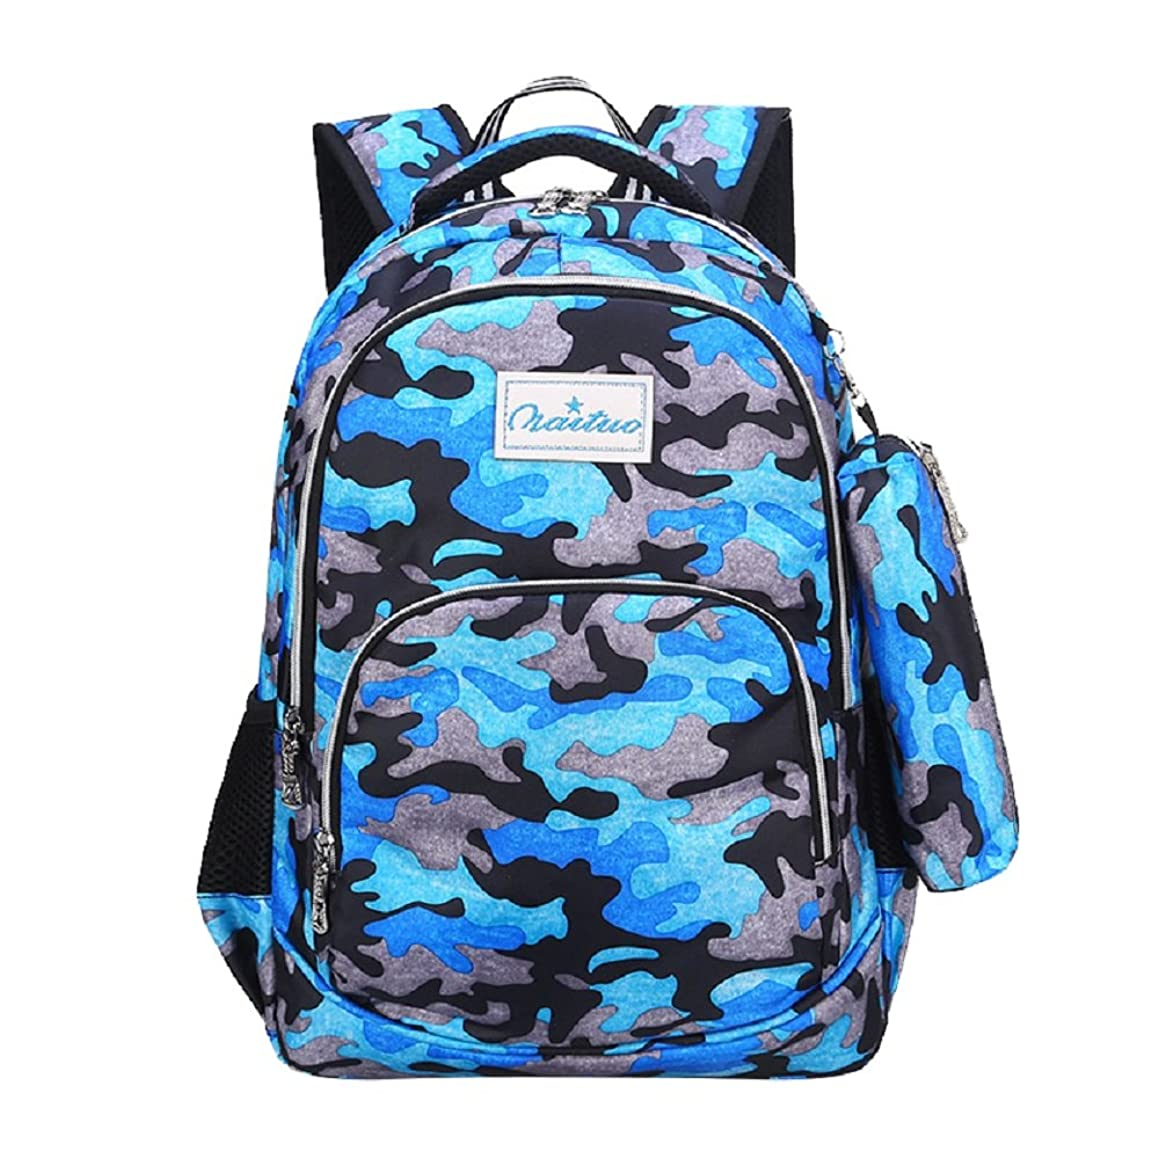 VIDOSCLA Camouflage Primary School Bag Elementary Student Backpack Boys Book Bag with Pencil Case